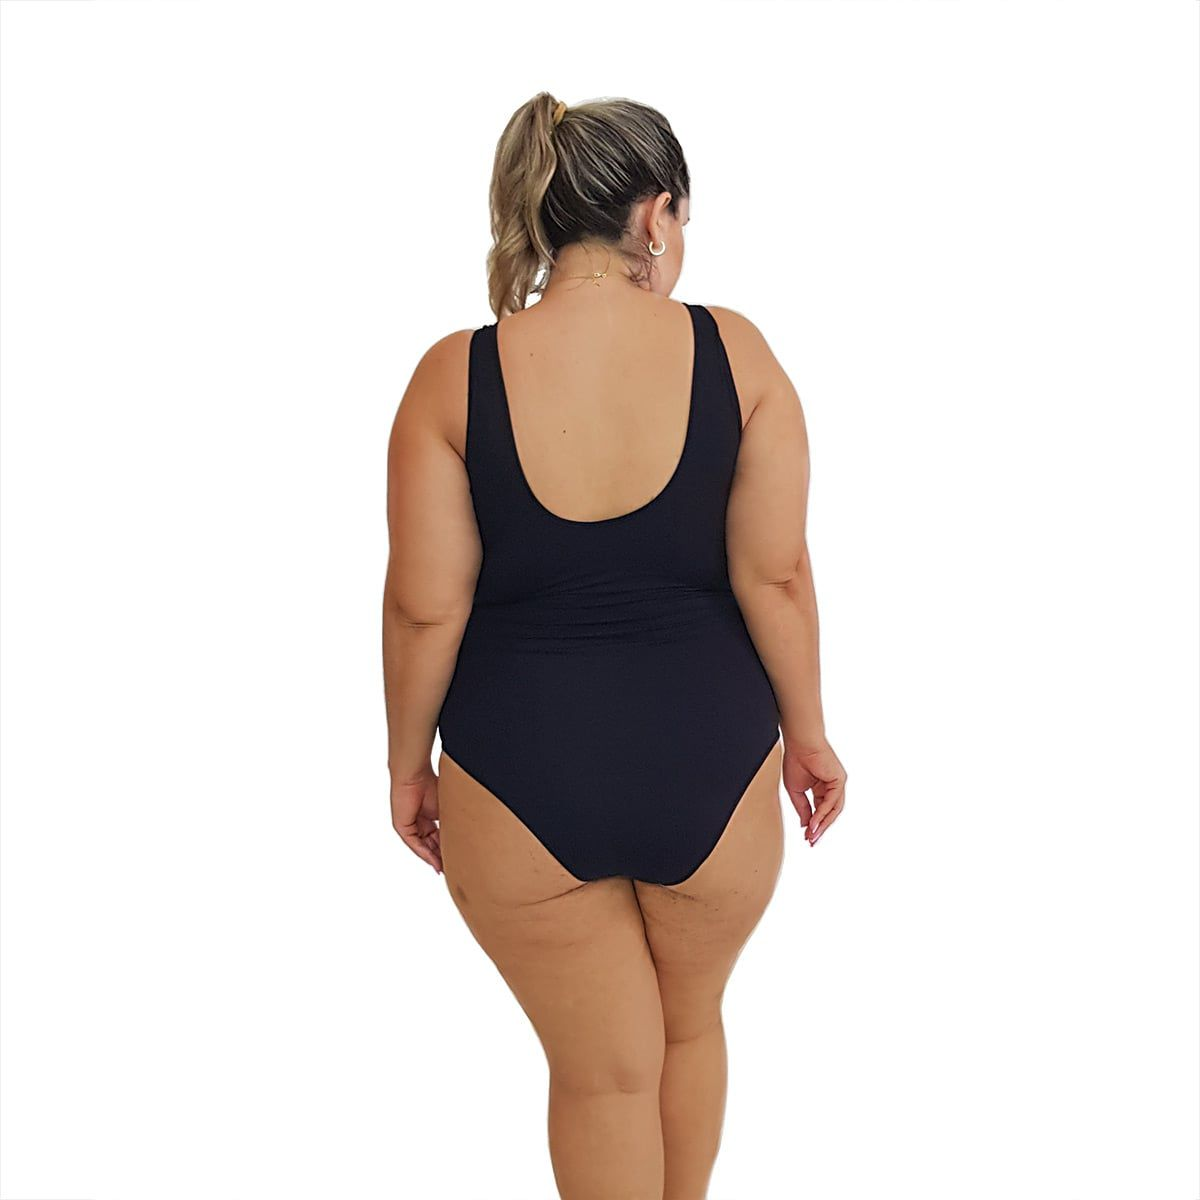 Maiô Natação Plus Size com Bojo Light UV 50+ Preto